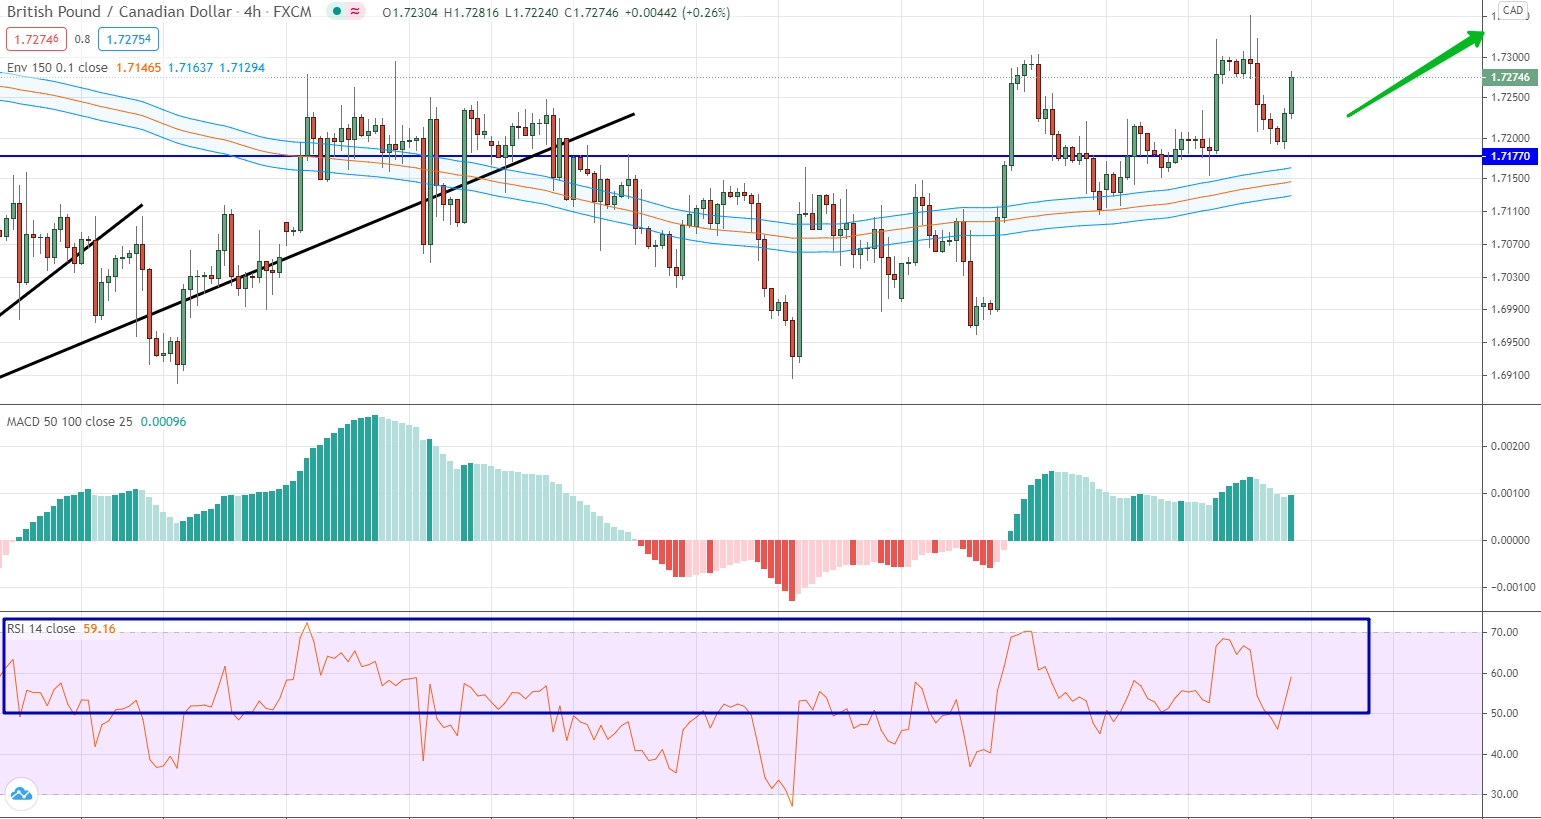 GBP/CAD analysis by moving averages, RSI and MACD